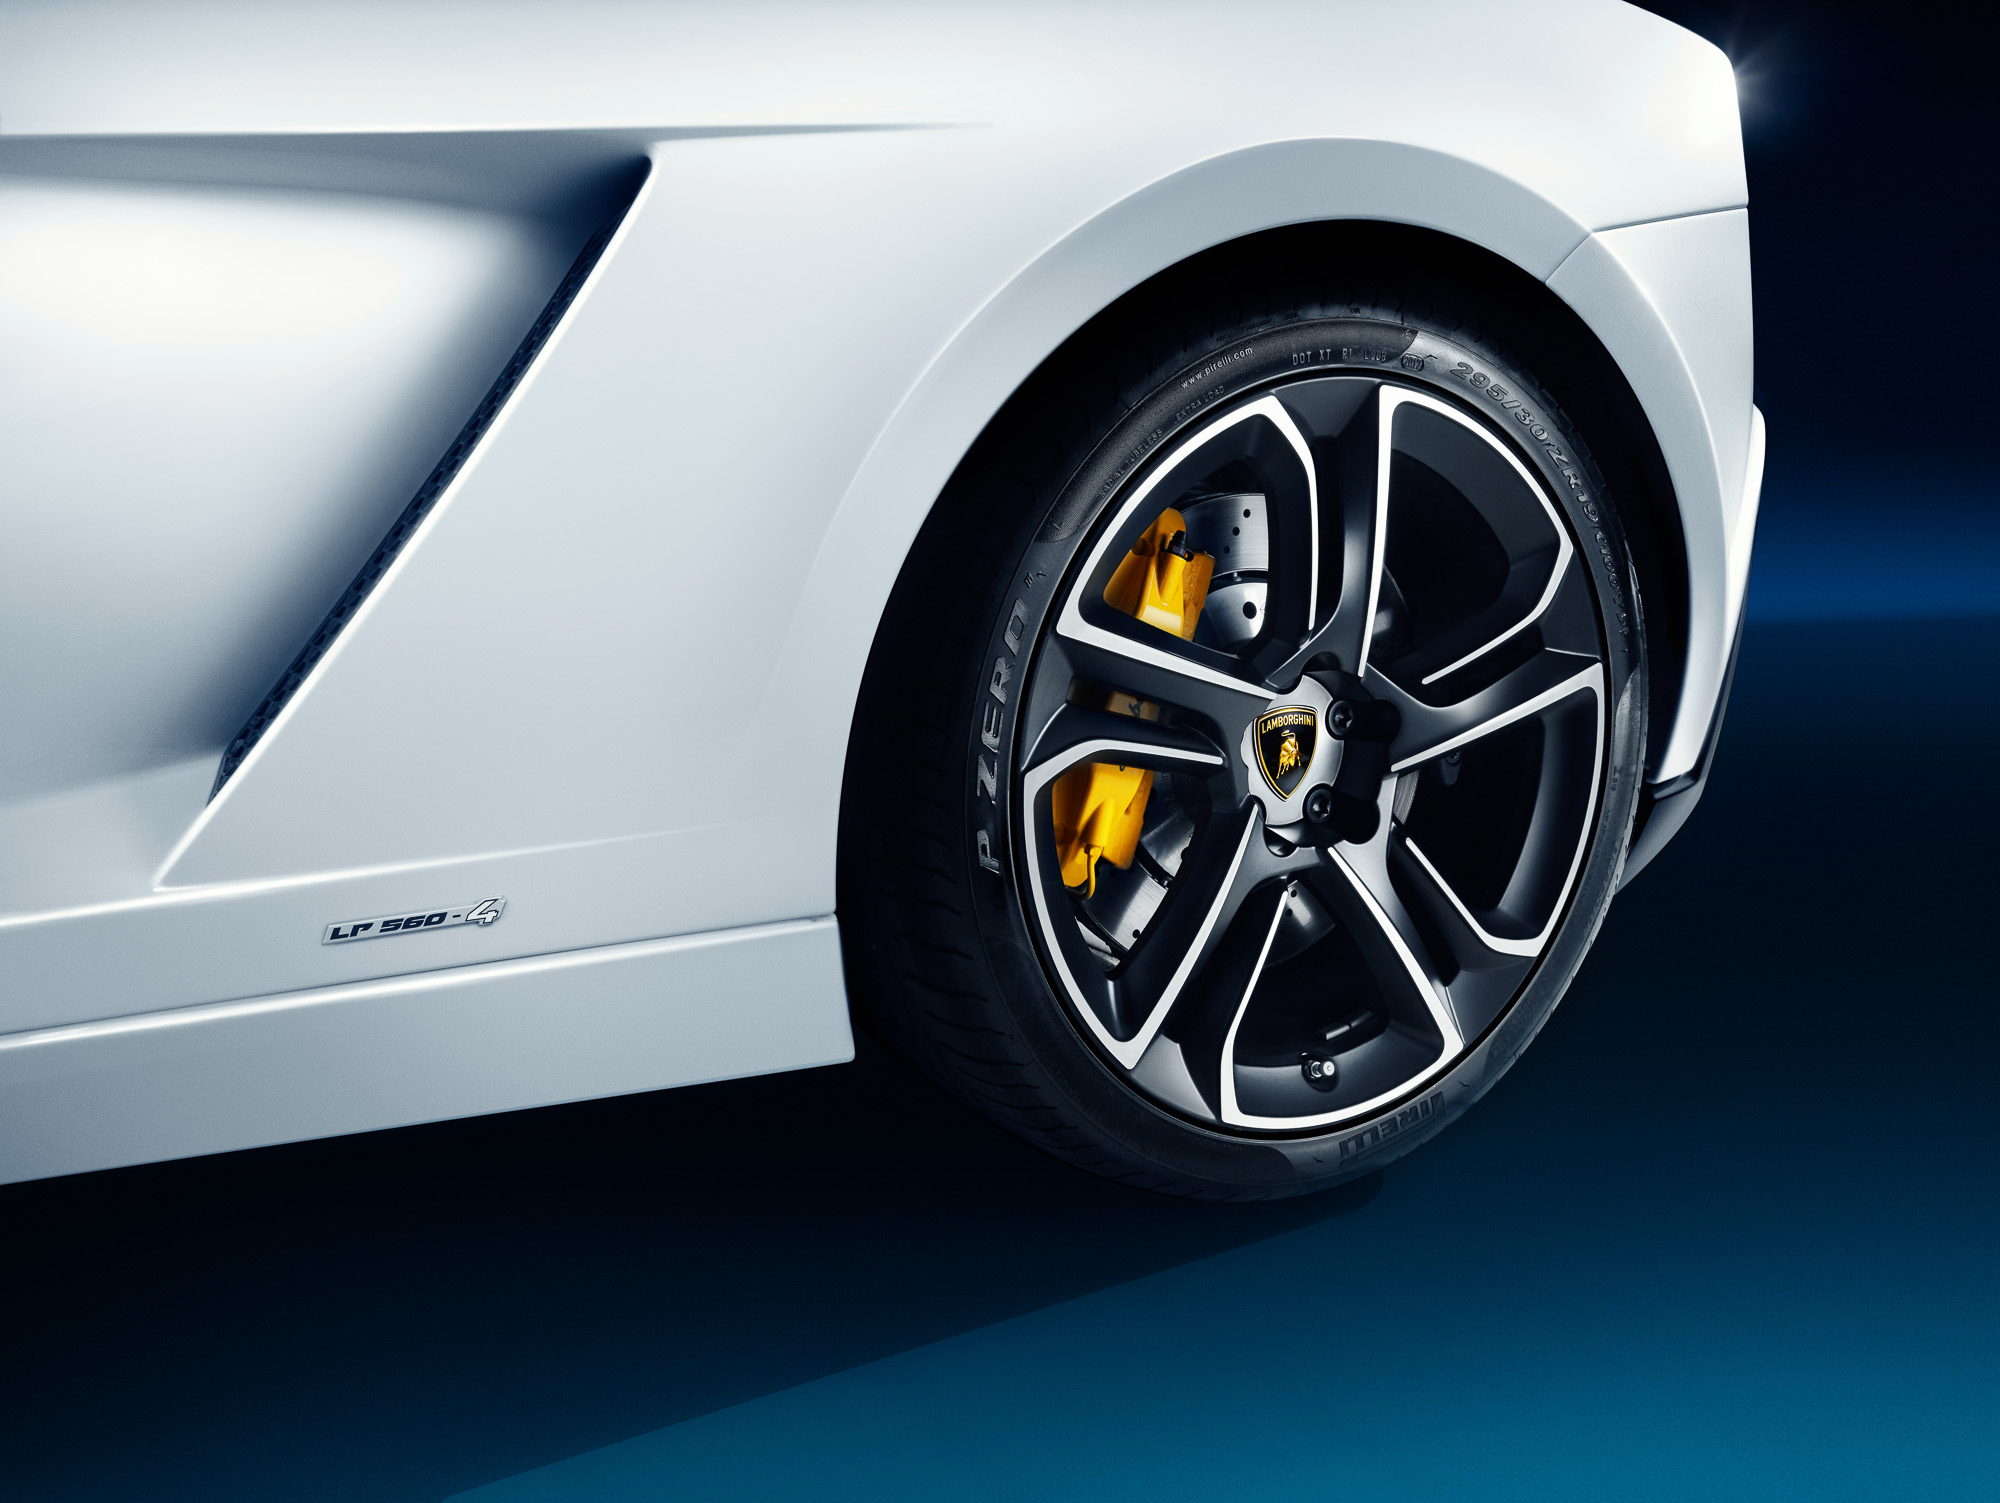 migs-foto-cgi-hong-kong-car-automotive-photography-photographer-lamborghini-gallardo-lp560-4-white-photoshoot-carshoot-rear-wheel-detail-2K